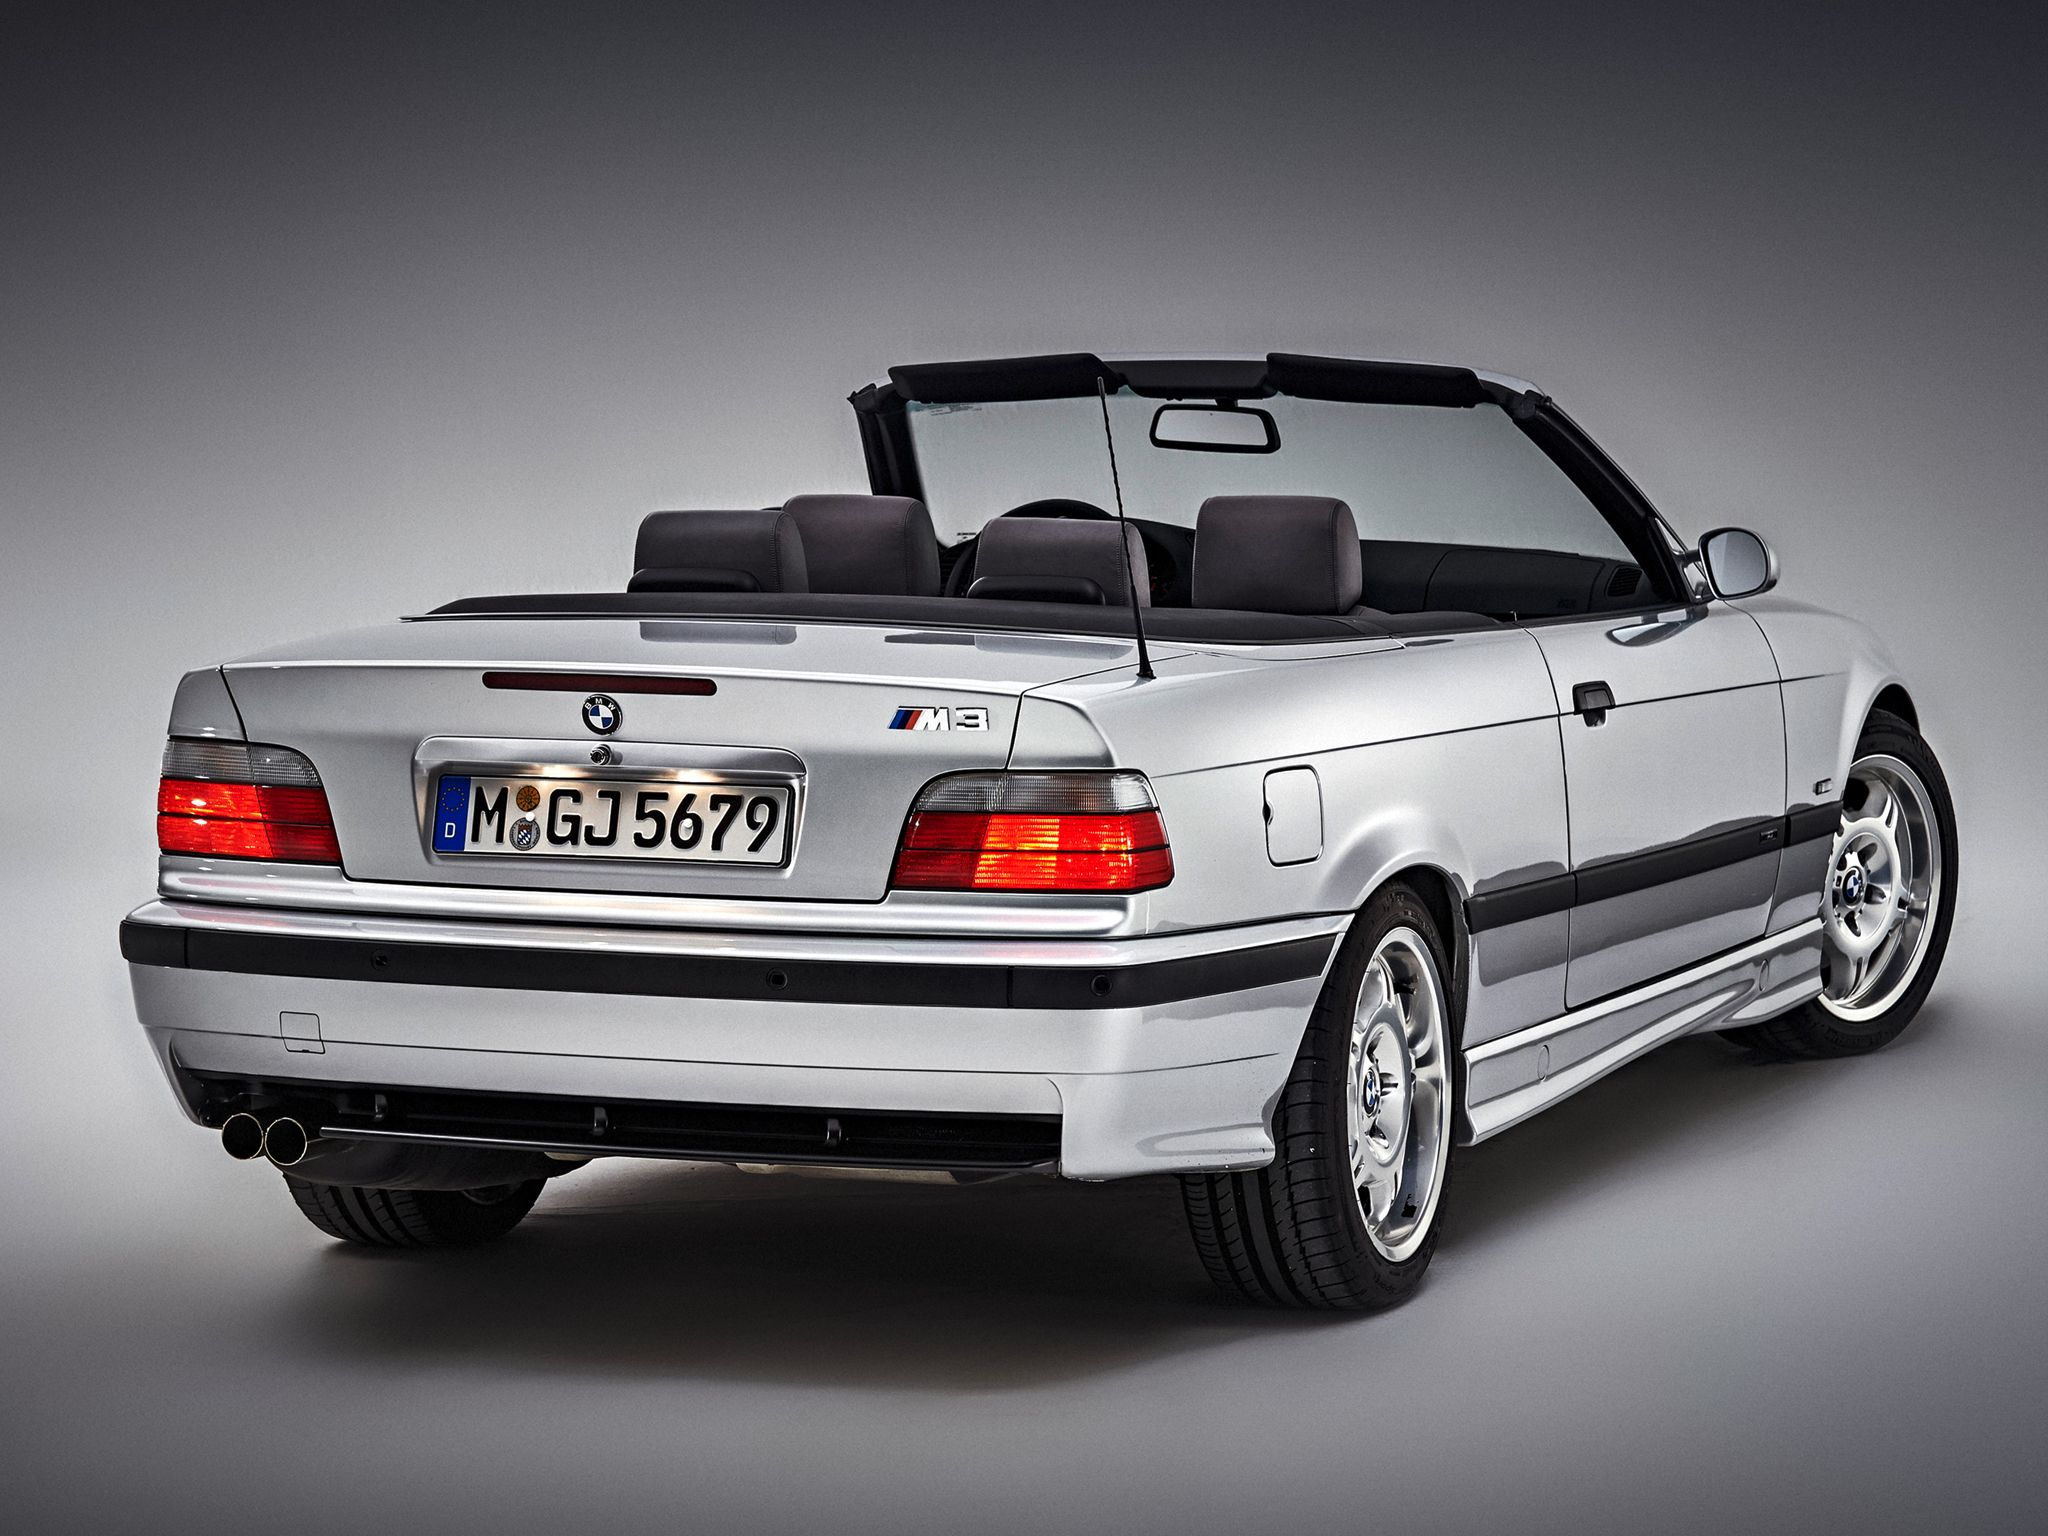 1994 99 bmw e36 m3 cabrio bmw alpina bmw m3 bmw m4. Black Bedroom Furniture Sets. Home Design Ideas